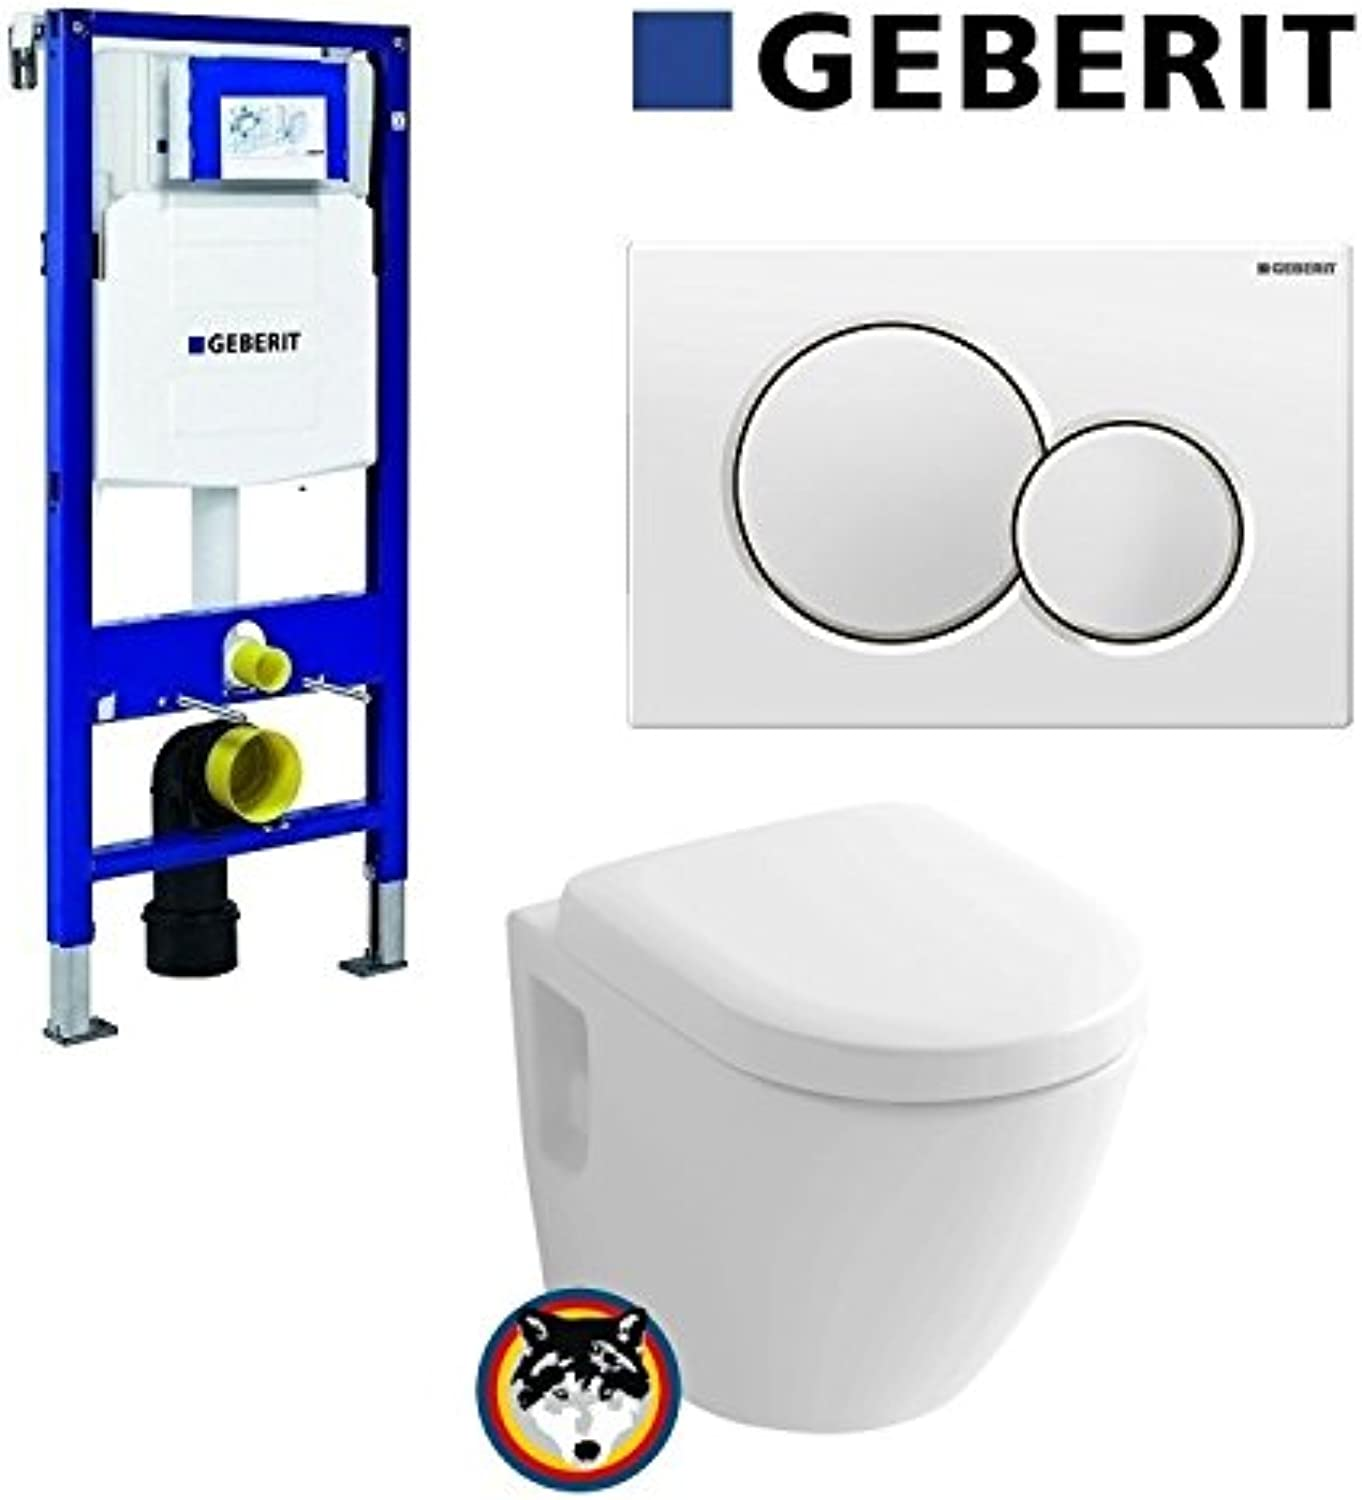 Geberit Duofix UP 320 Vorwandelement mit Sigma01, Toto CW762Y Wand WC TORNADO FLUSH, WC Sitz Softclose